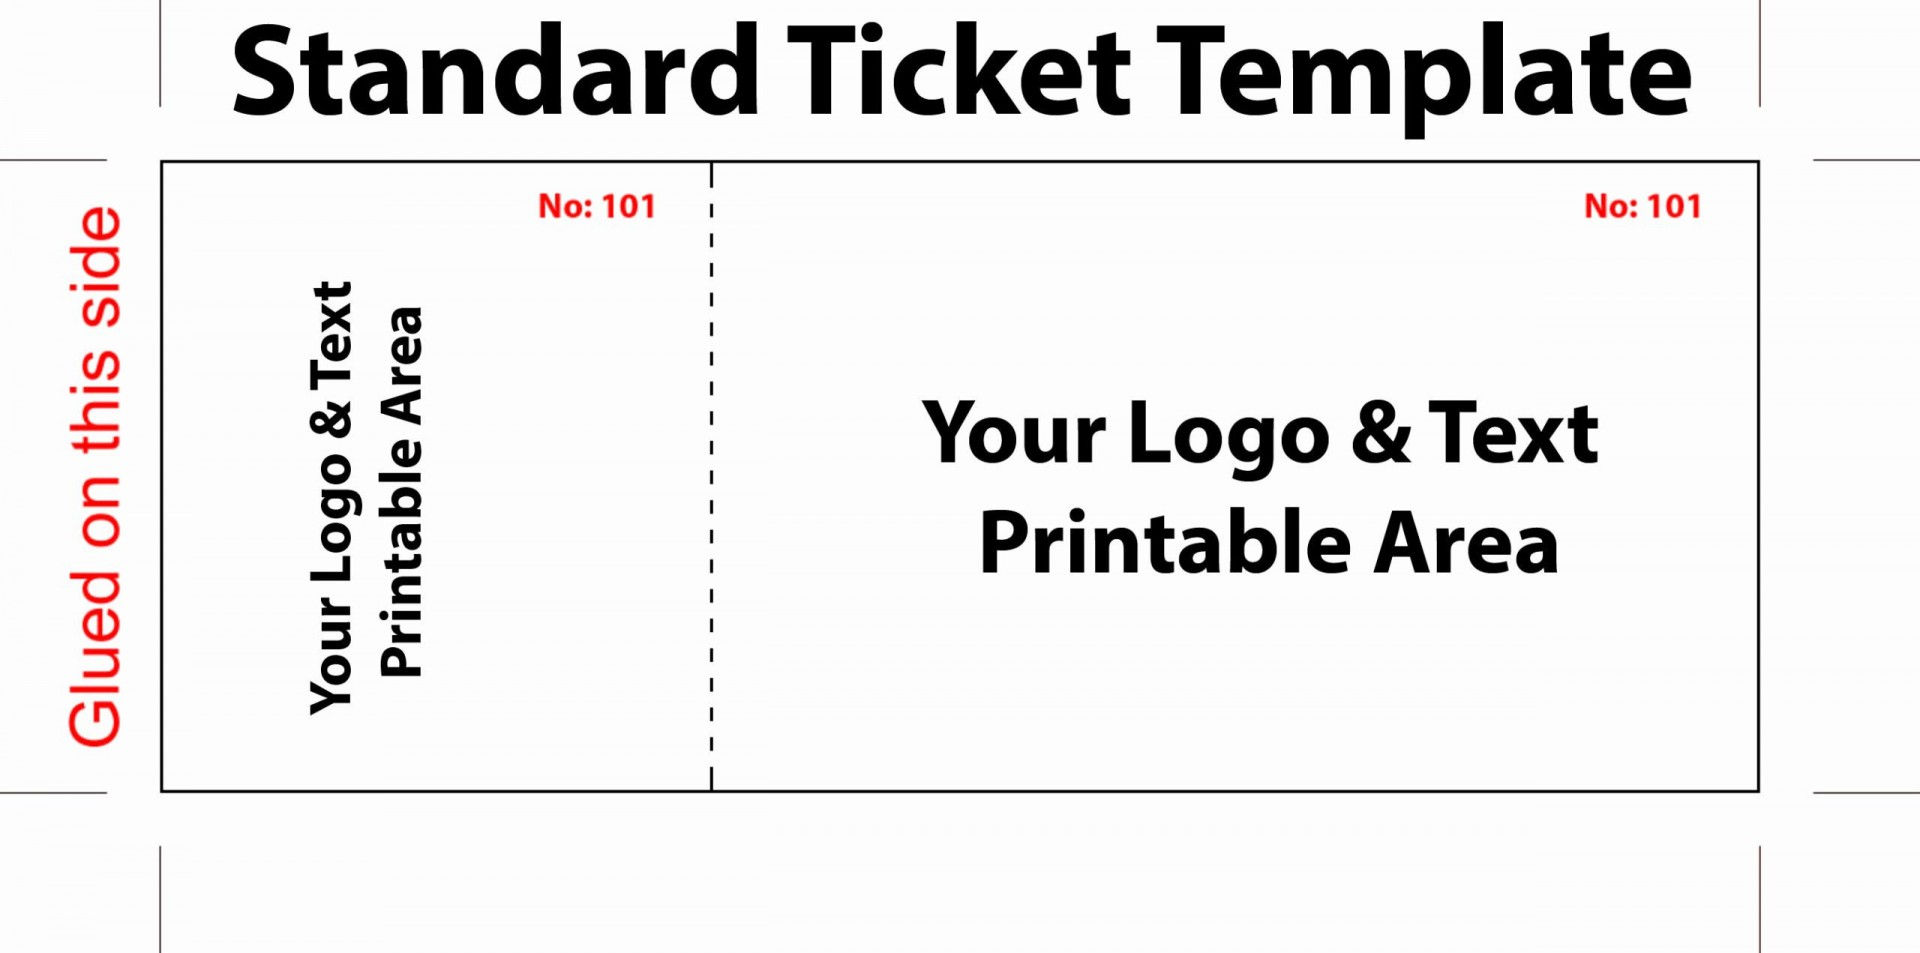 000 Singular Printable Raffle Ticket Template Picture  Free With Number Excel1920